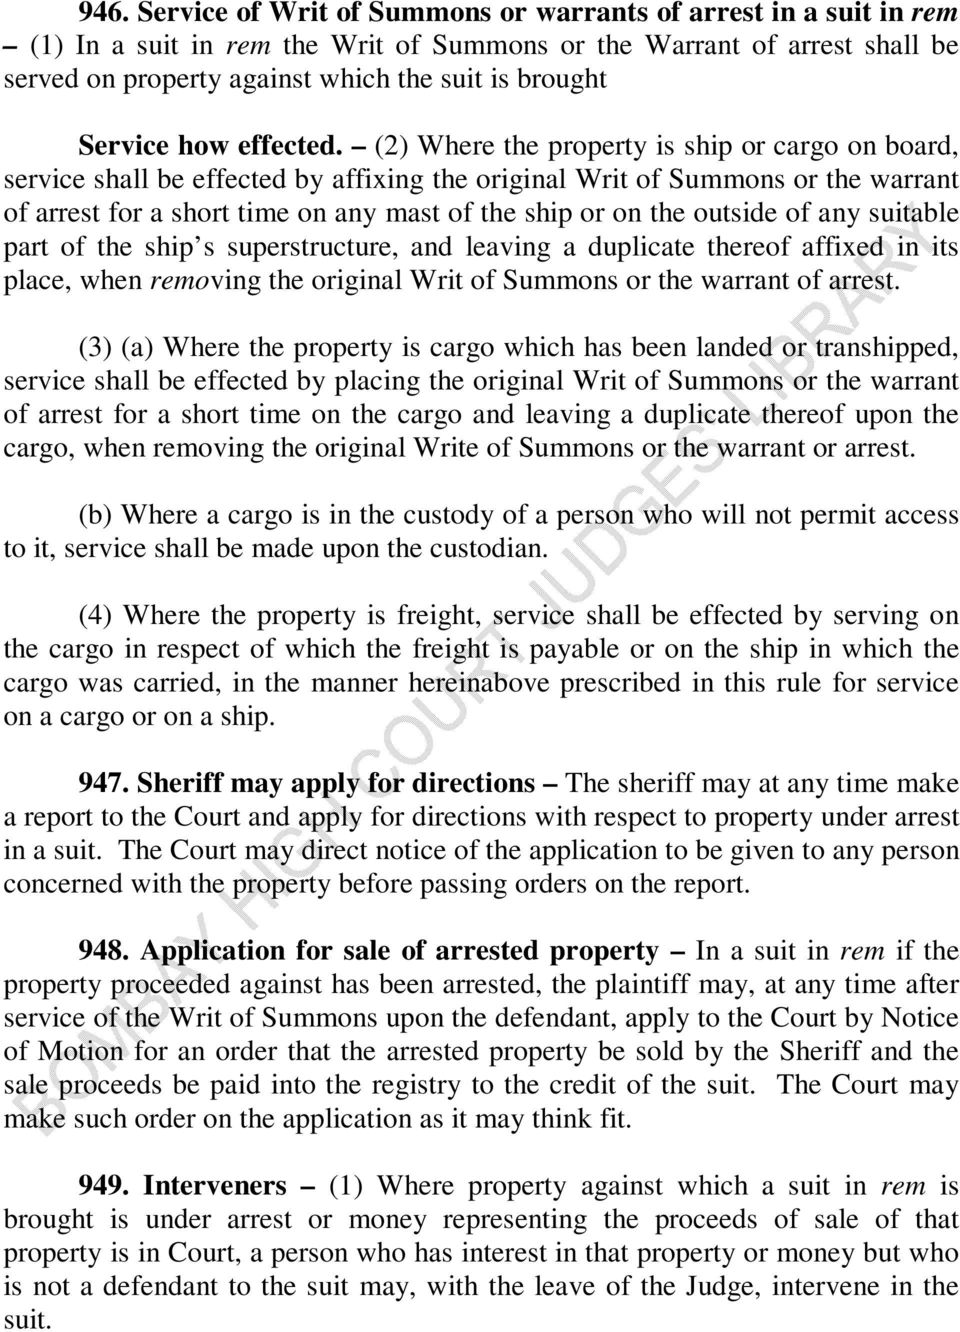 (2) Where the property is ship or cargo on board, service shall be effected by affixing the original Writ of Summons or the warrant of arrest for a short time on any mast of the ship or on the